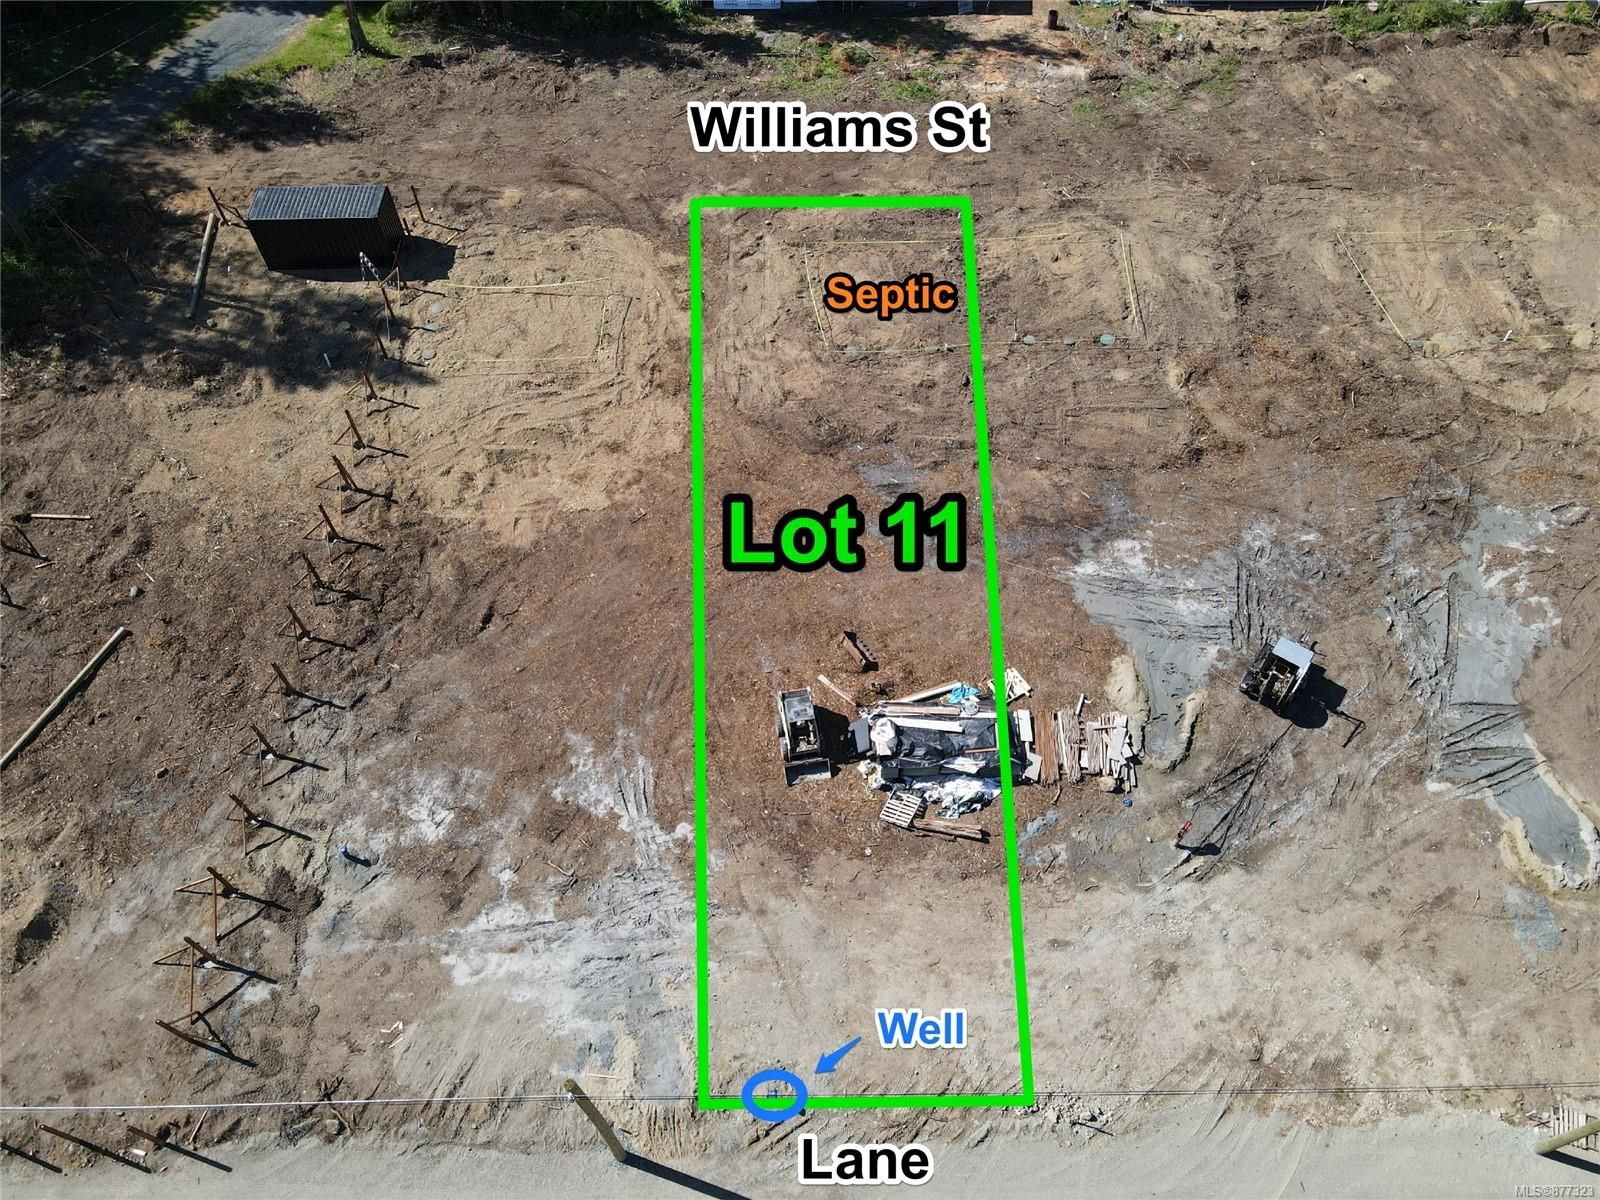 Main Photo: Lot 11 Williams St in : PQ Errington/Coombs/Hilliers Land for sale (Parksville/Qualicum)  : MLS®# 877323